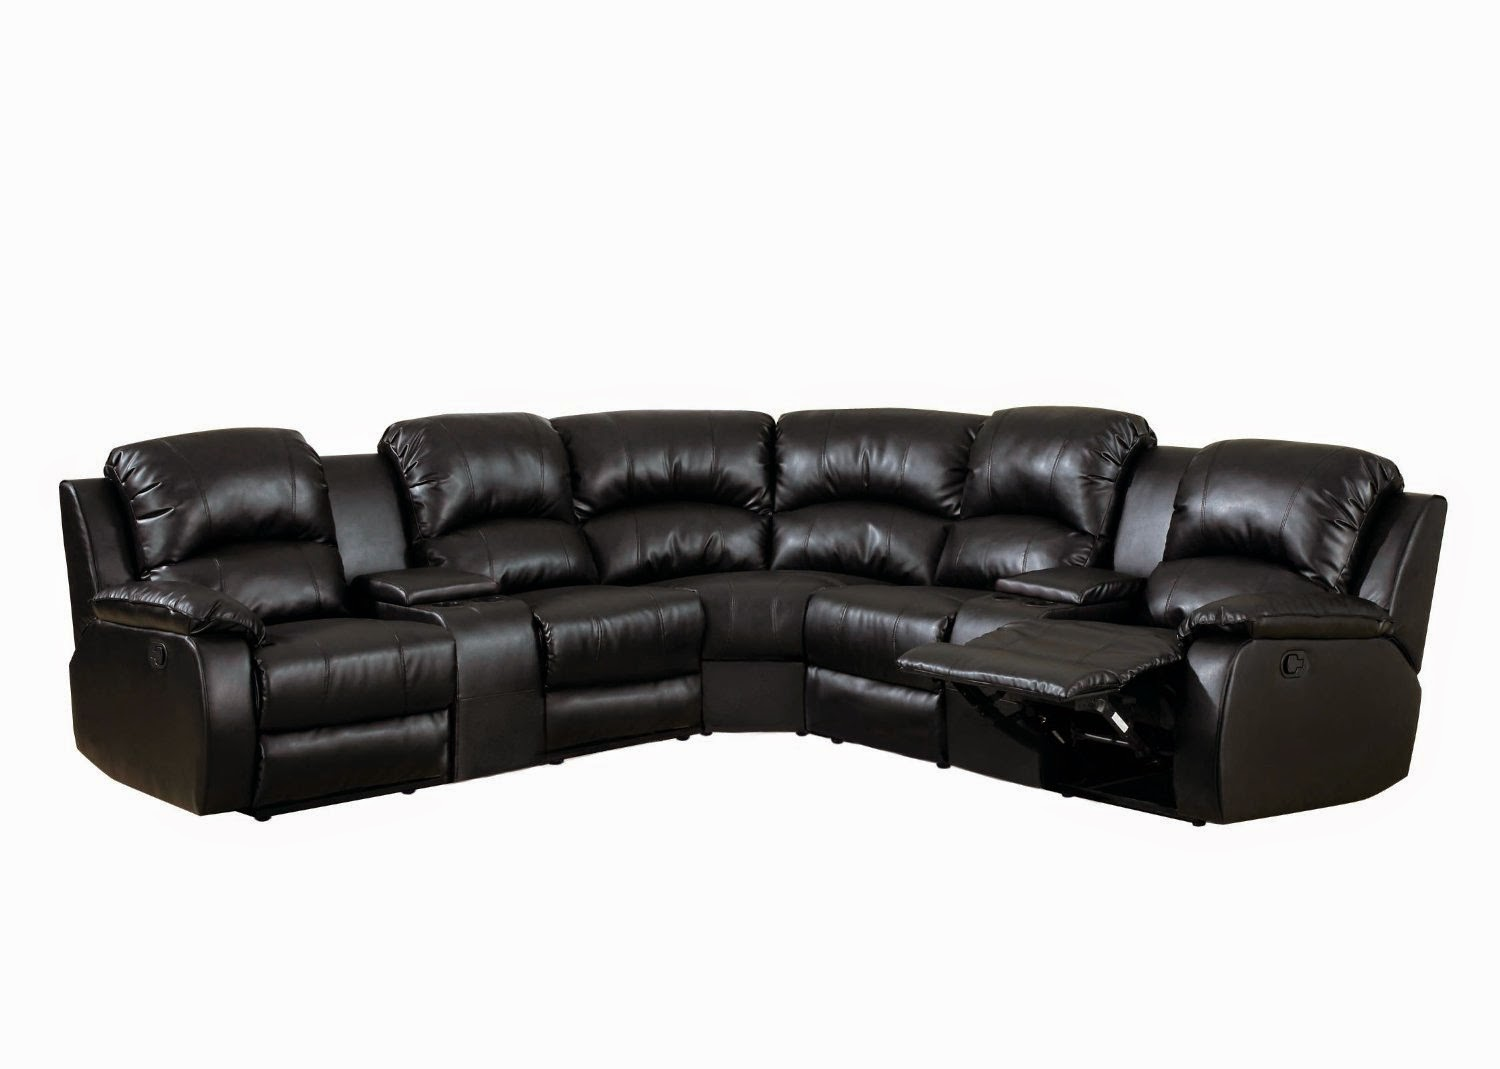 Fine Best Leather Reclining Sofa Brands Reviews England Novak Gmtry Best Dining Table And Chair Ideas Images Gmtryco